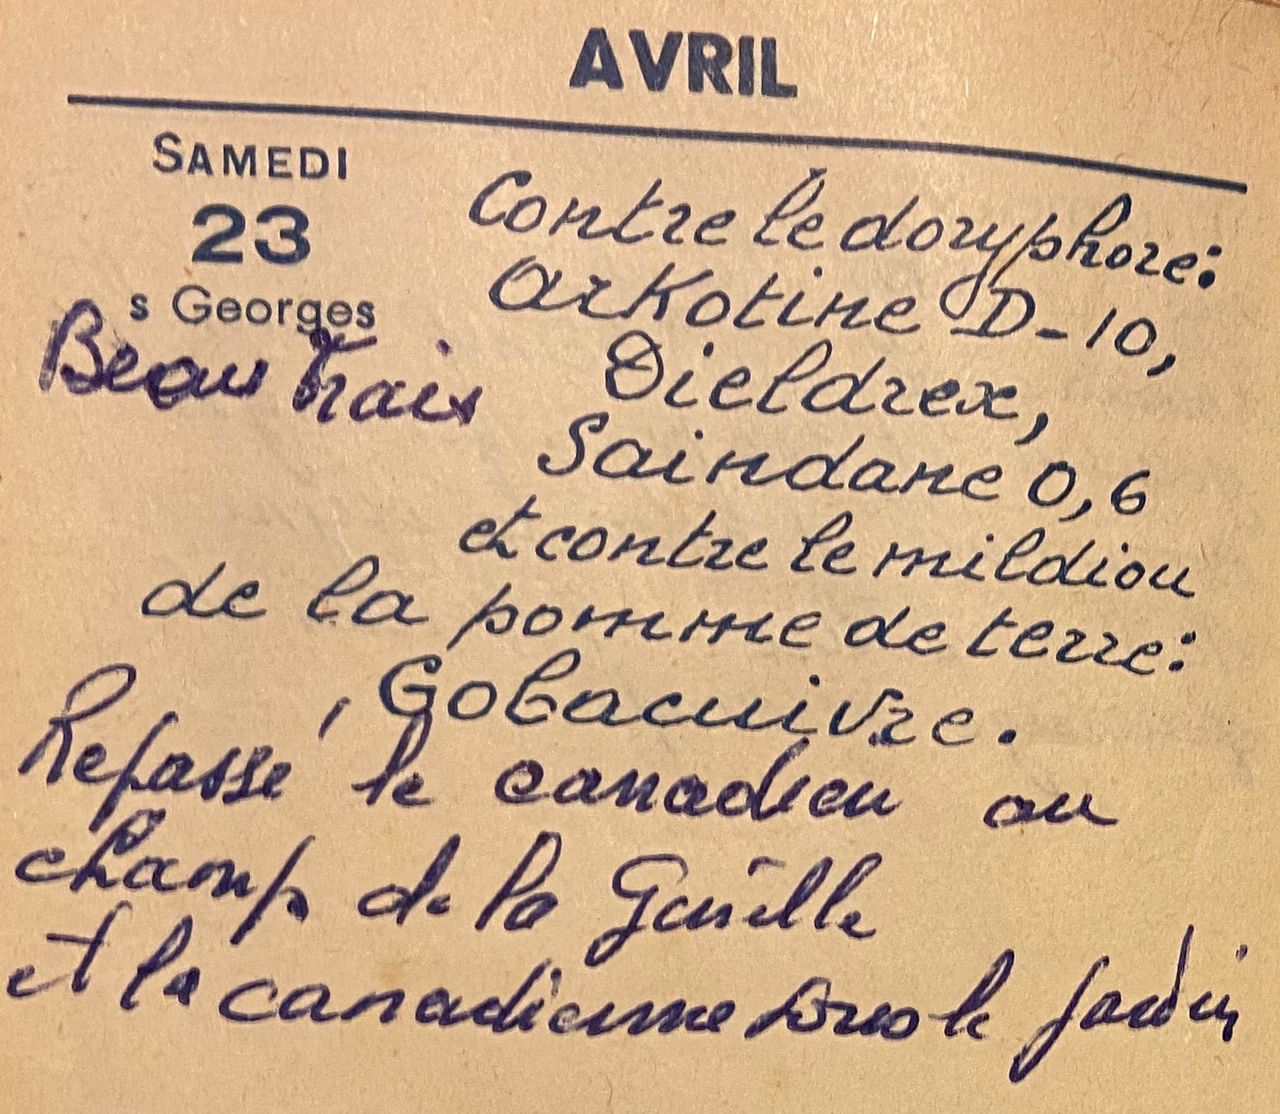 Vendredi 23 avril 1960 - le canadien et la canadienne